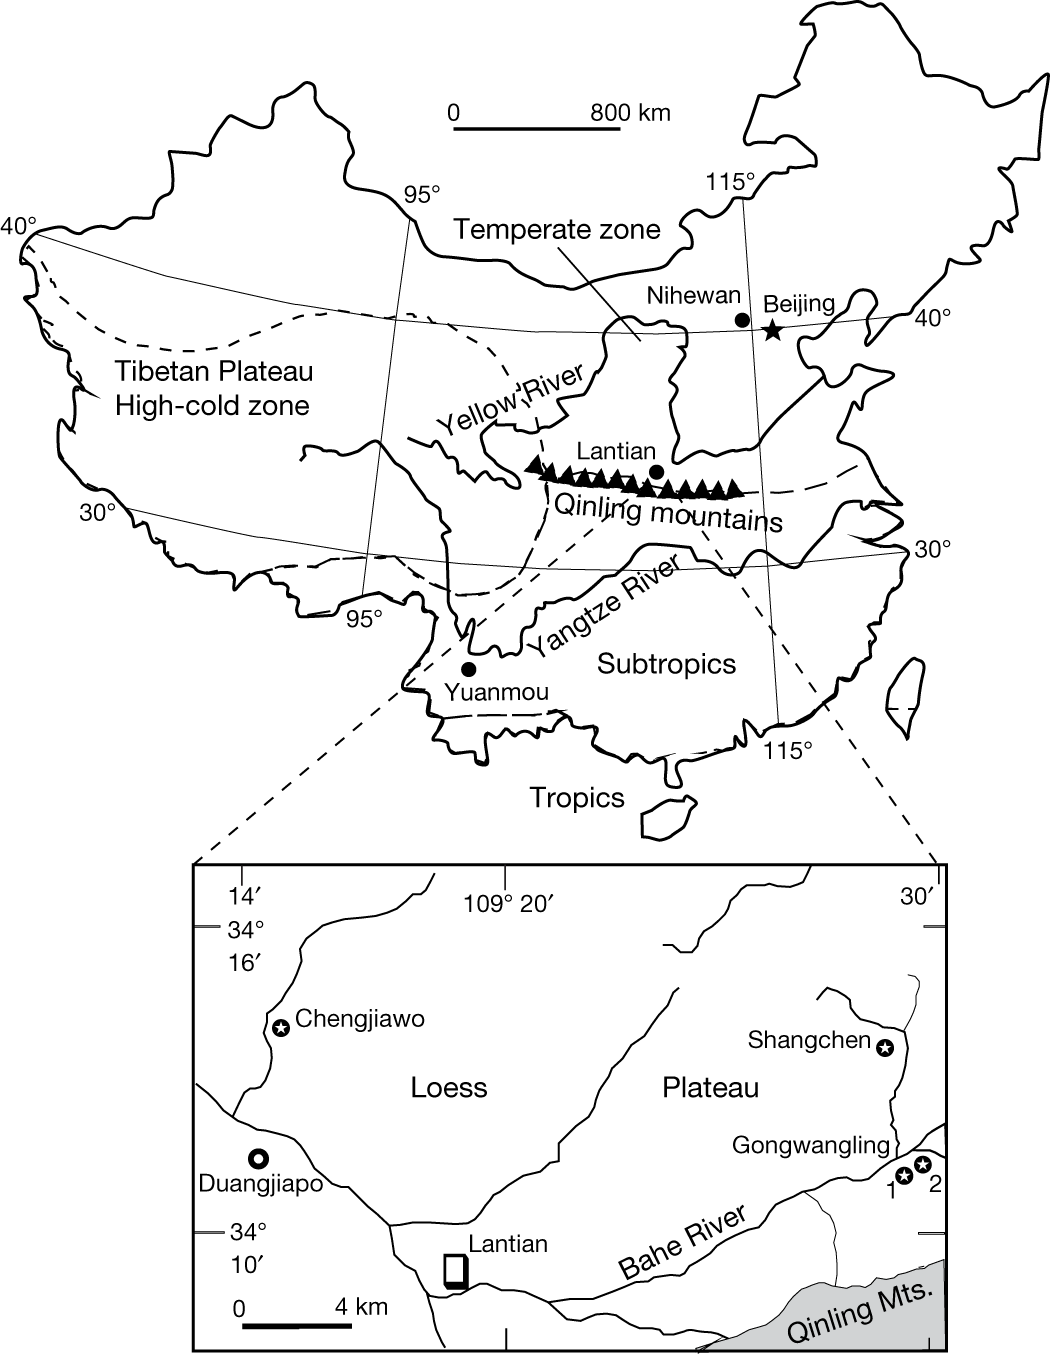 Hominin Occupation Of The Chinese Loess Plateau Since About 21